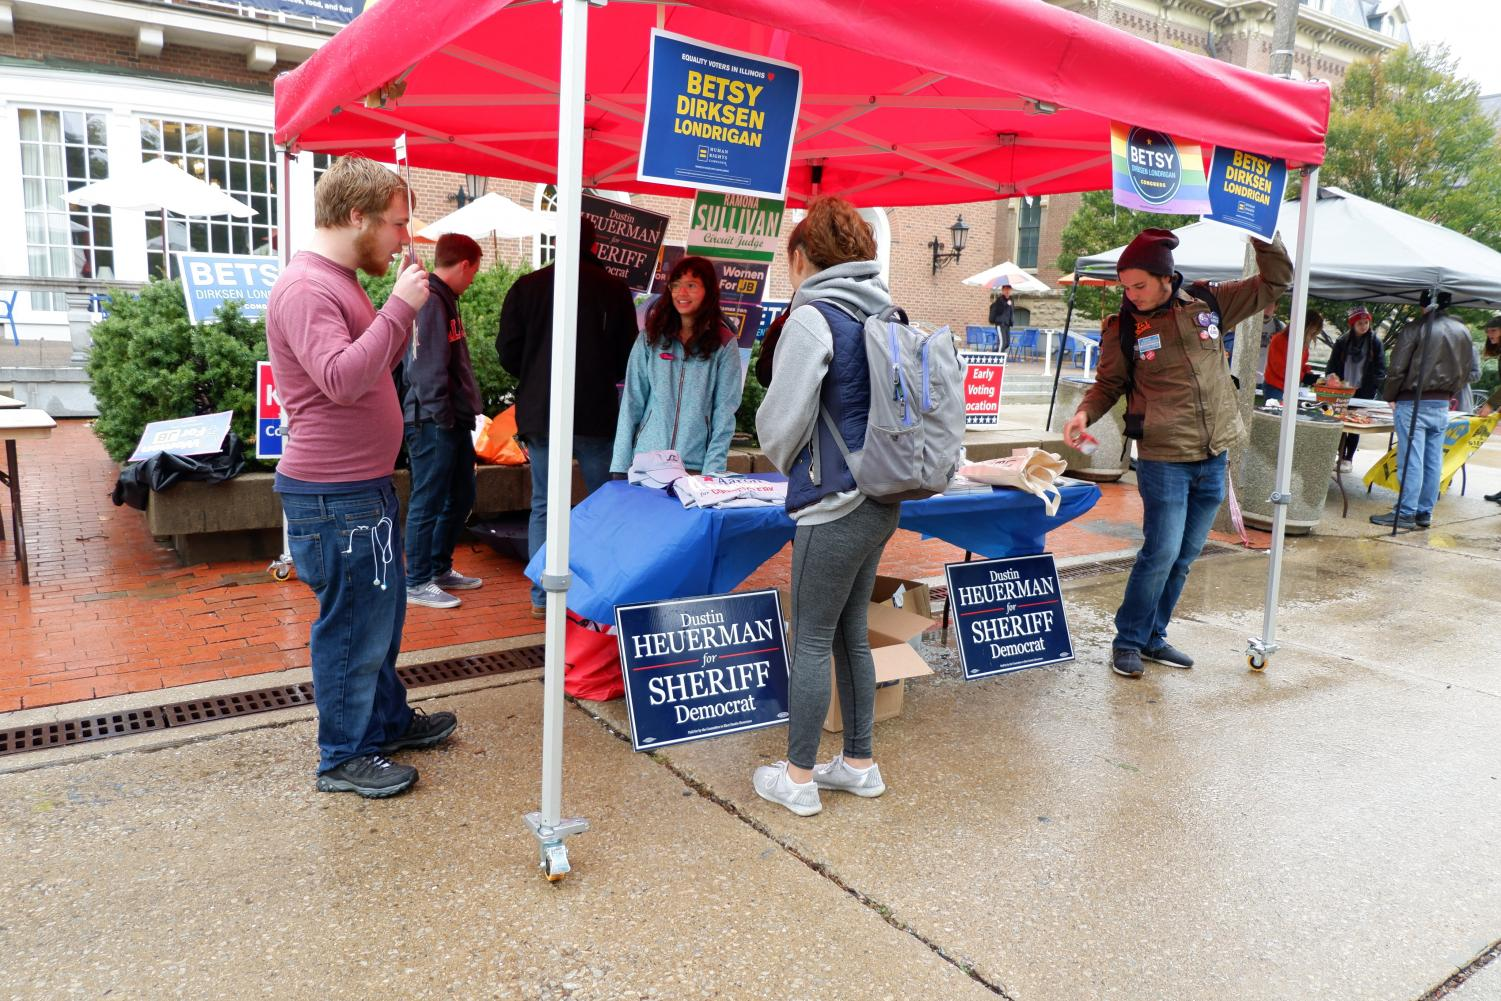 Students visit a tent set up on the Main Quad in front of the Illini Union during Pollapalooza on Friday. The event was created to encourage students to vote in the upcoming election and included information tables, free food and live music.